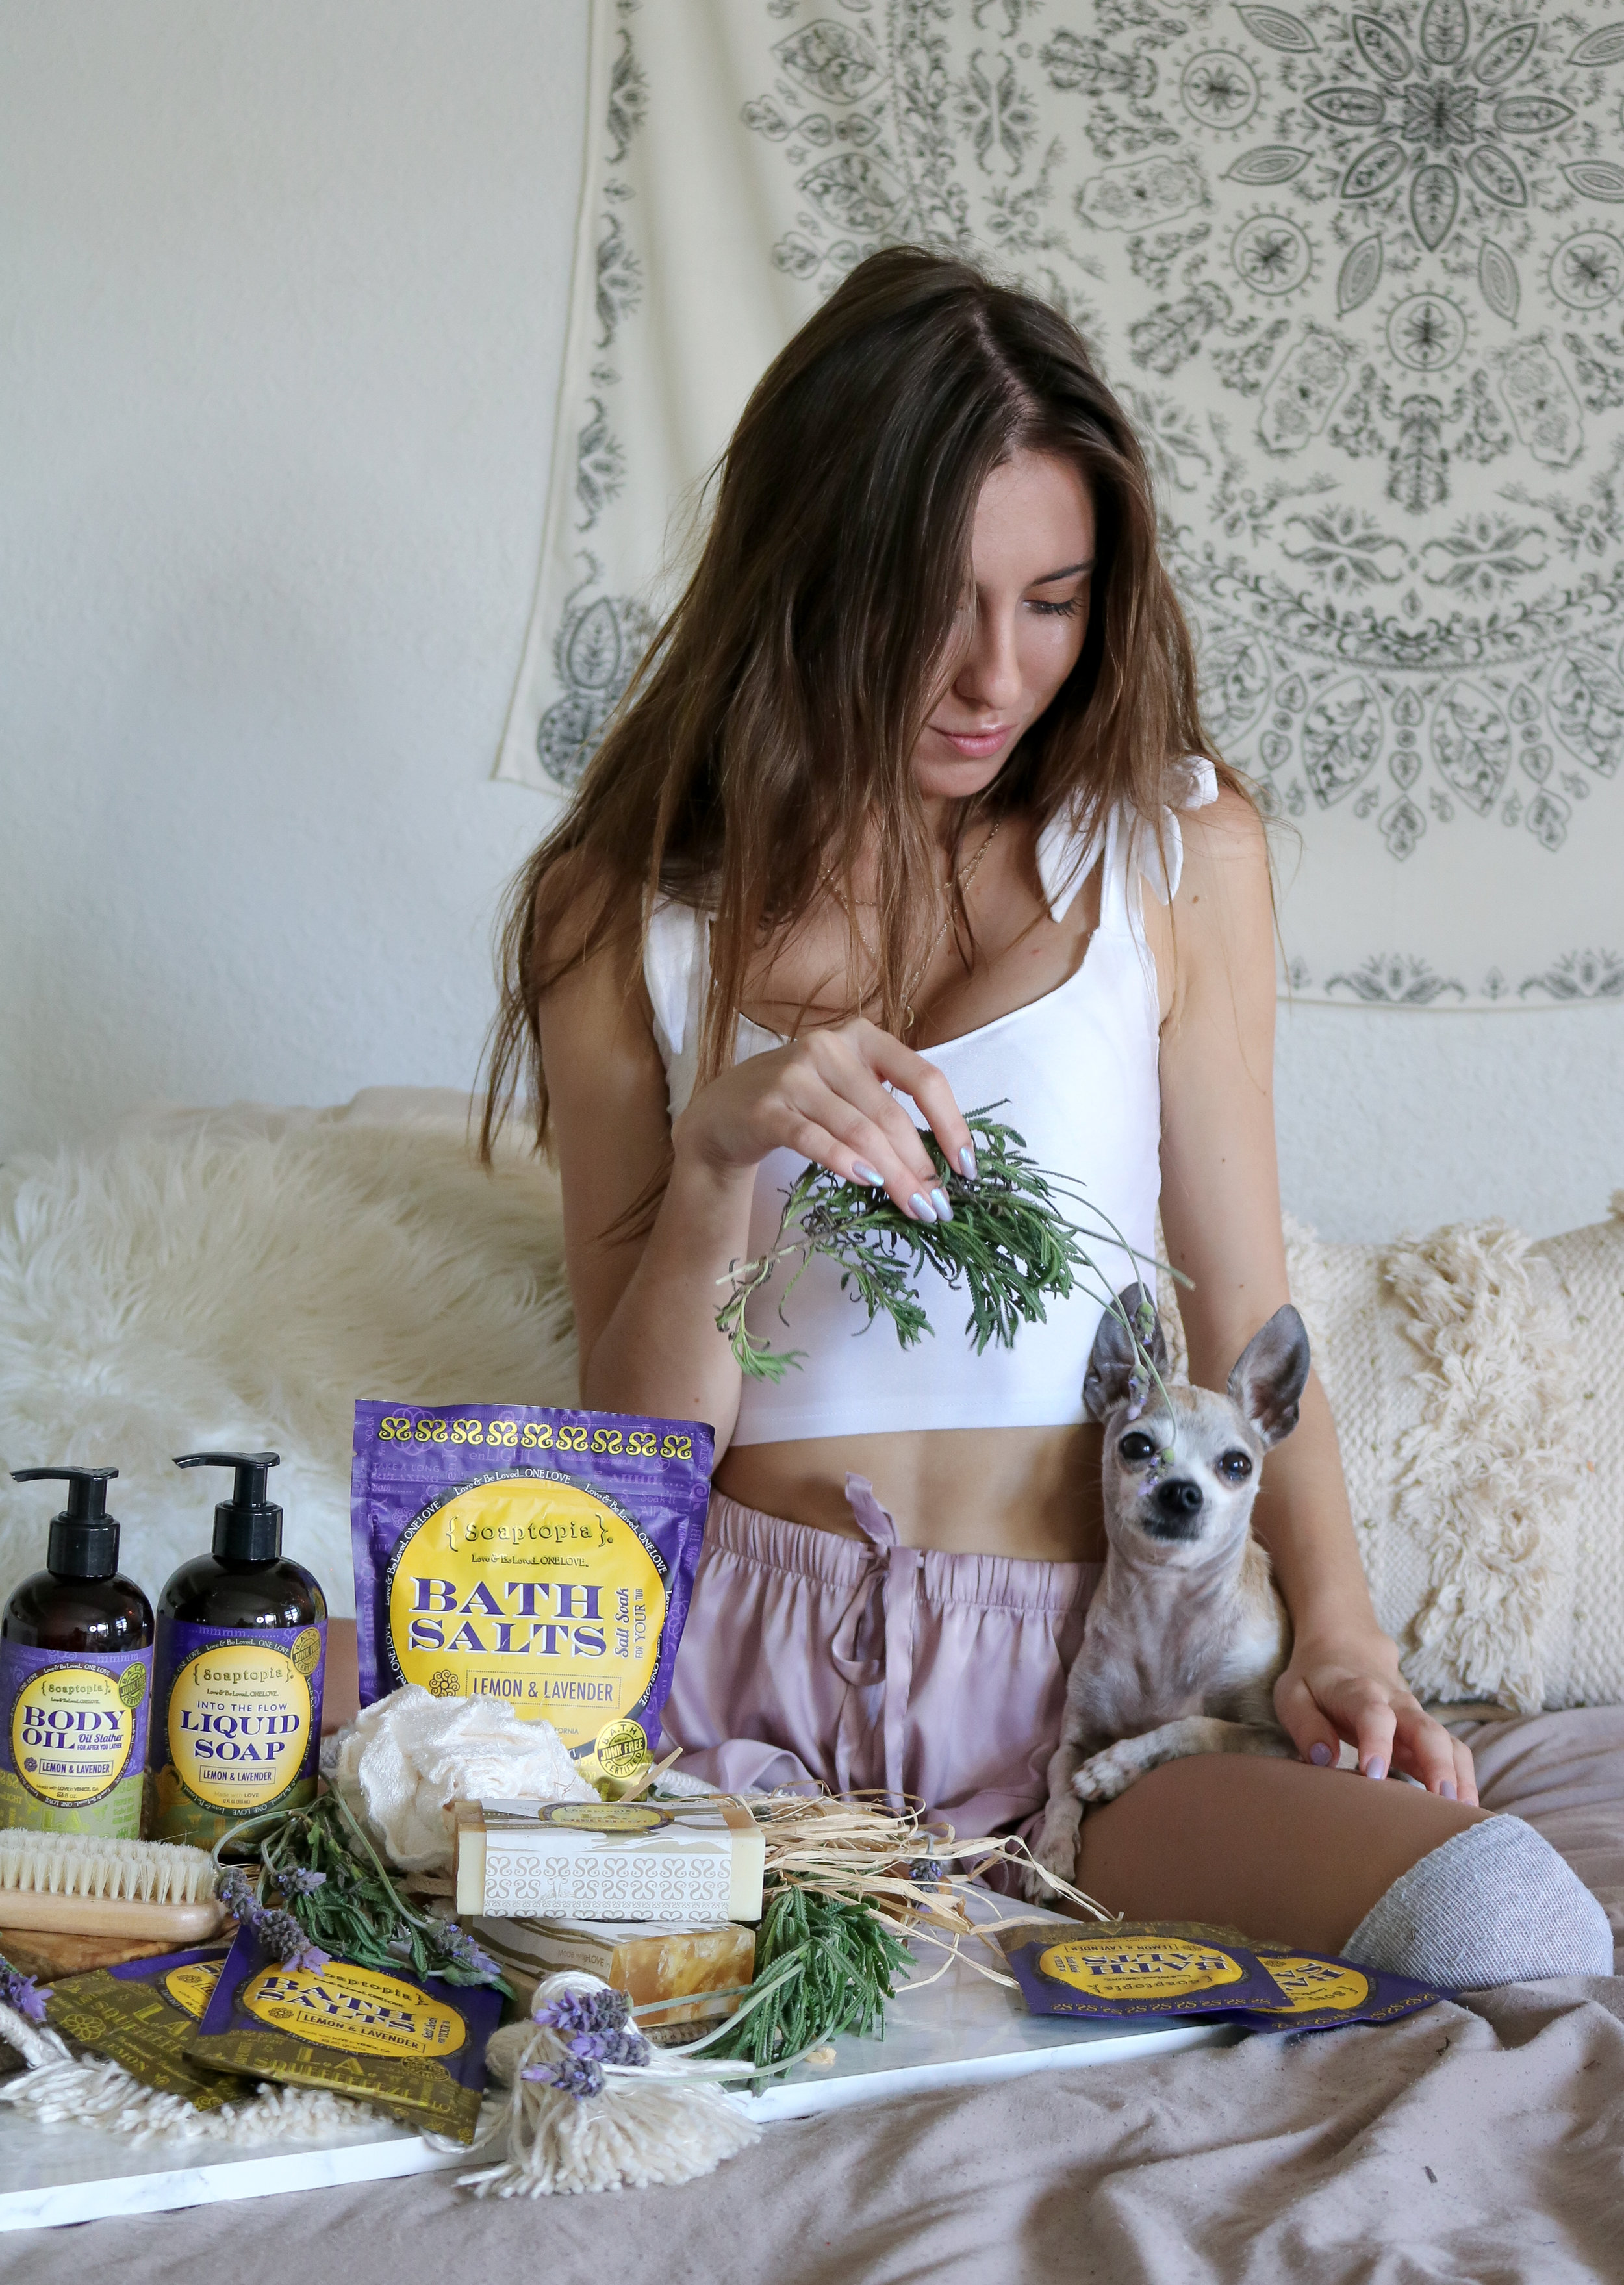 The Hungarian Brunette - THE PERFECT BATH TIME RITUAL (& PRODUCT LINE) TO UNWIND AT NIGHT - Soaptopia Lemon lavender collection